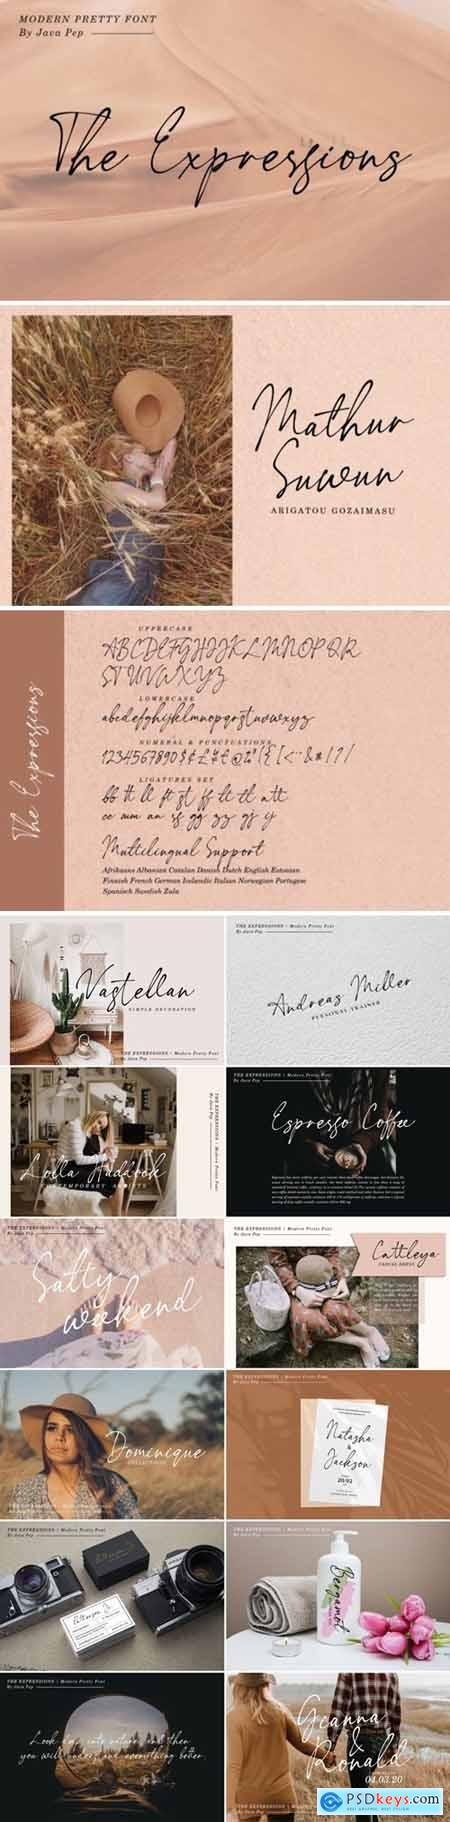 The Expressions - modern pretty font 4595230